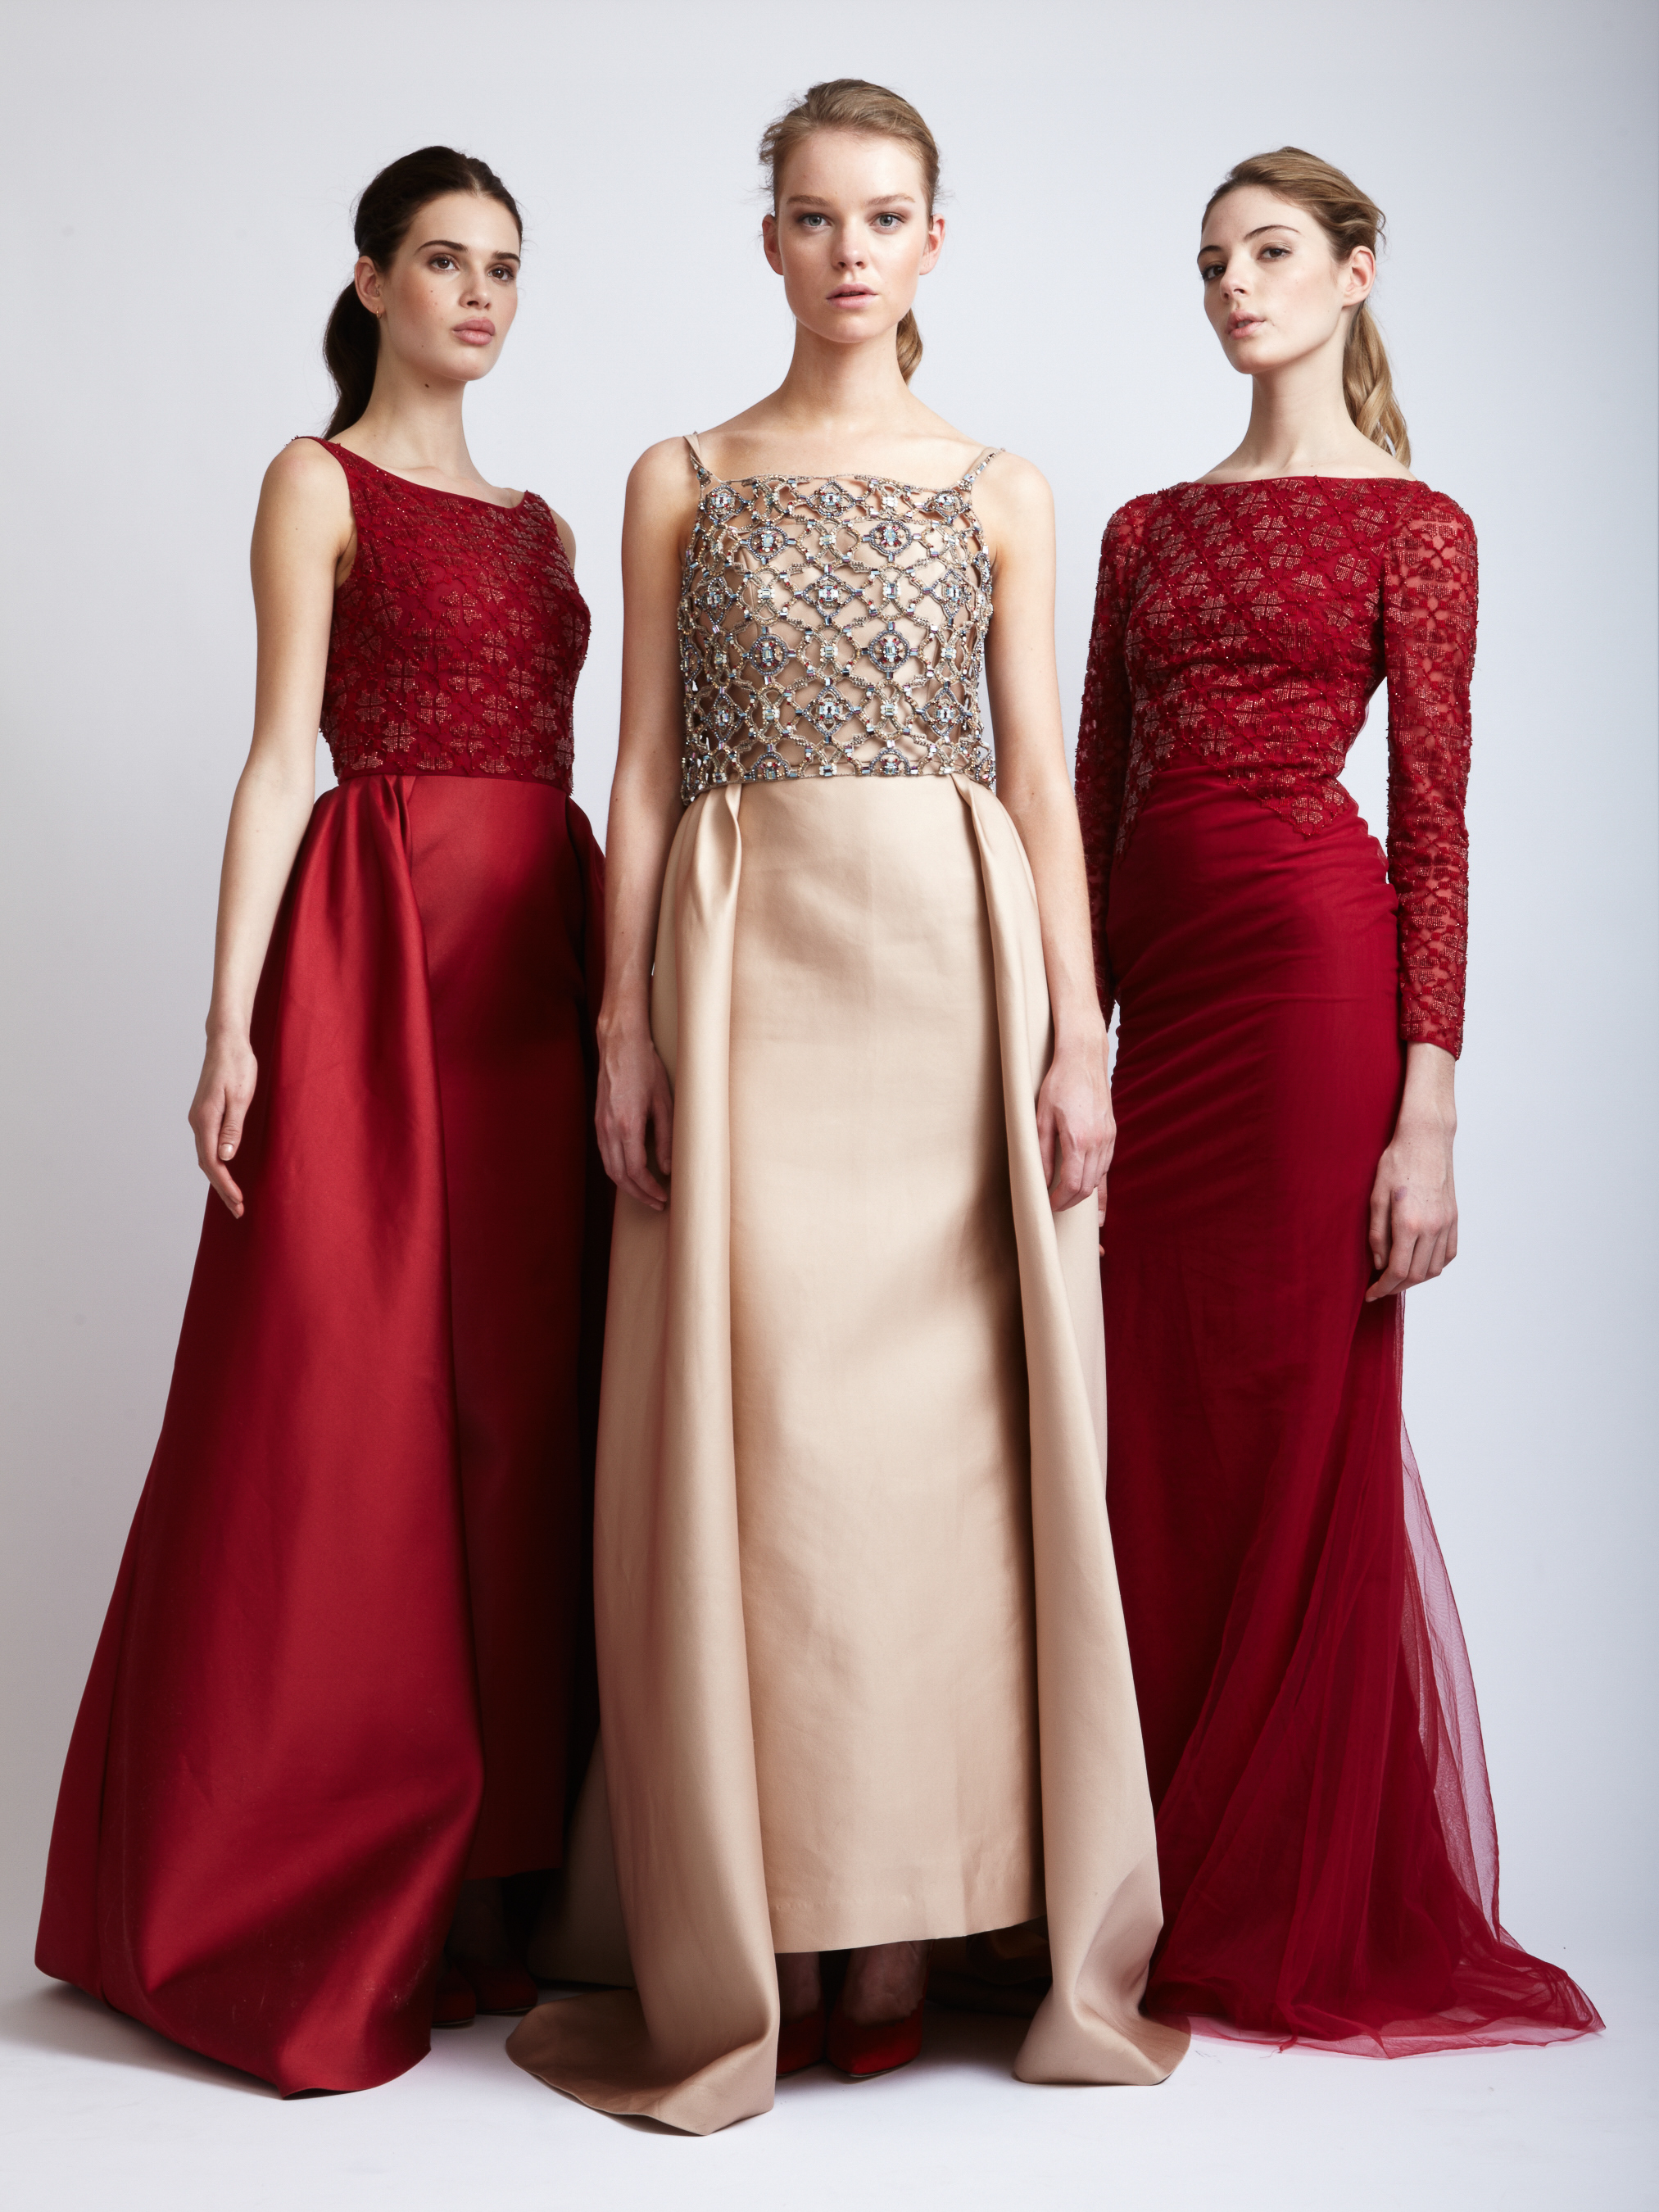 Toujouri A/W14 Collection embraces Palestinian traditional cross stitching